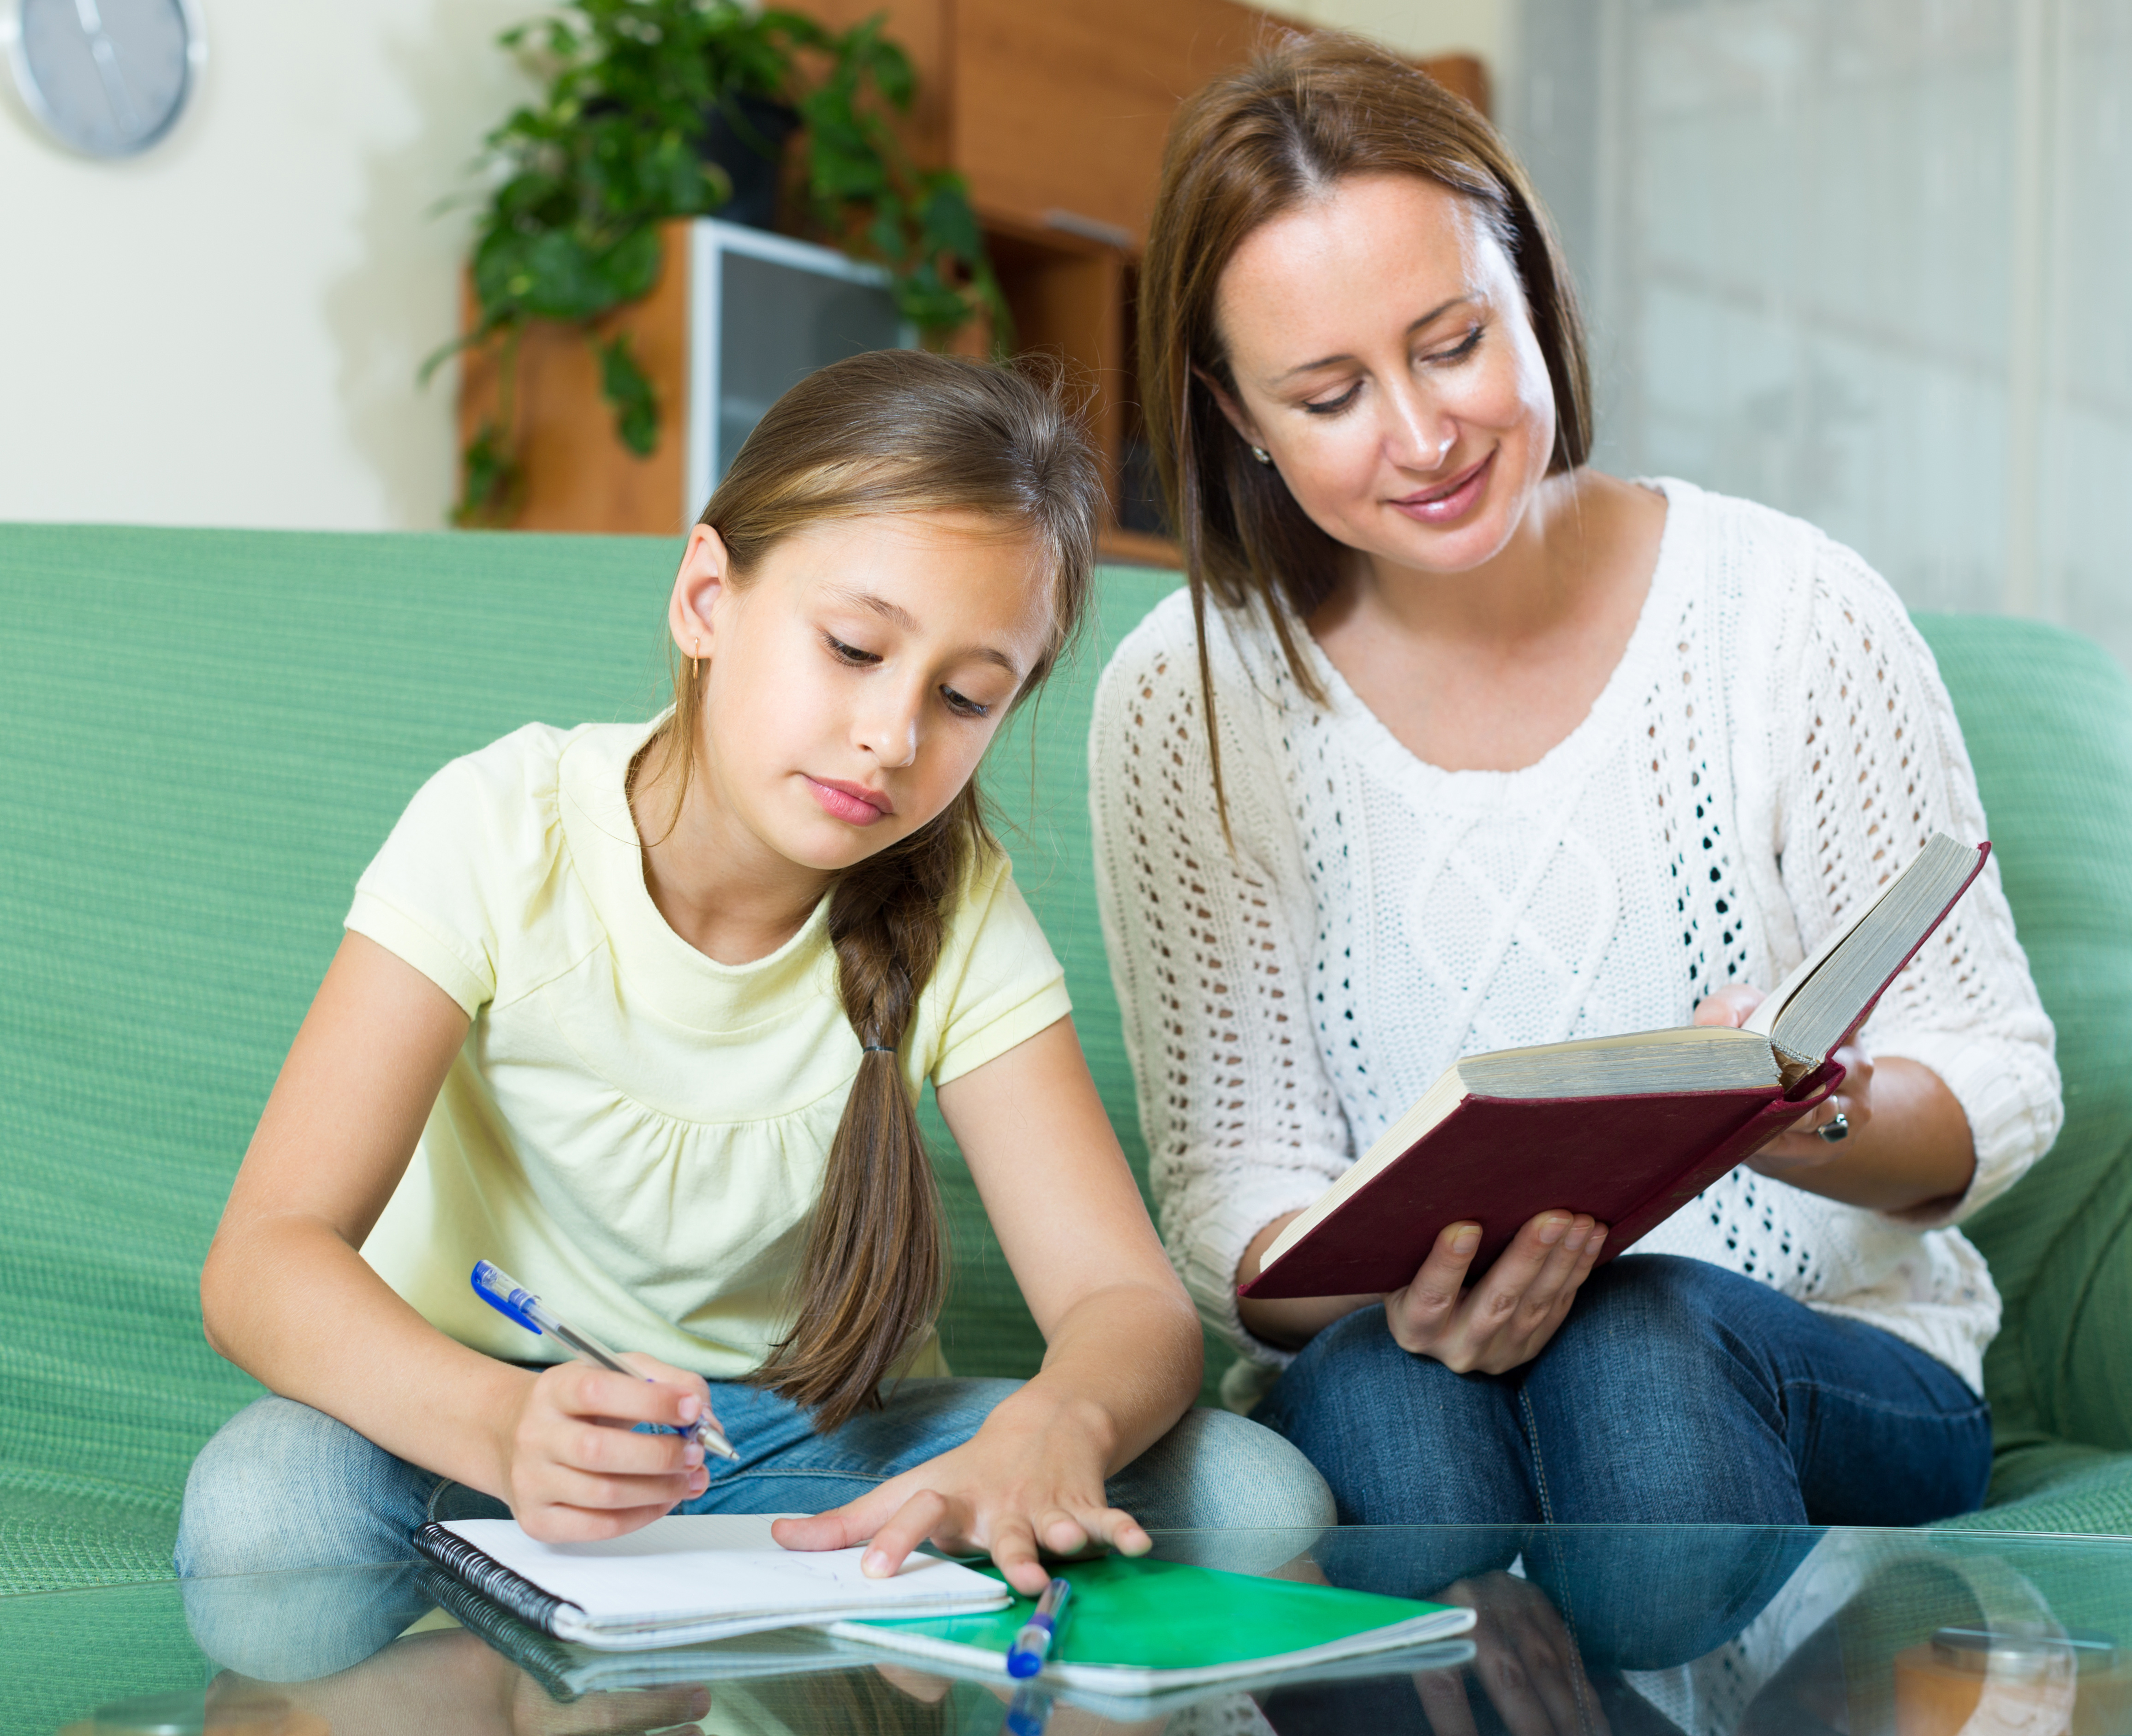 What do you wish you would've known about homeschooling before getting started?